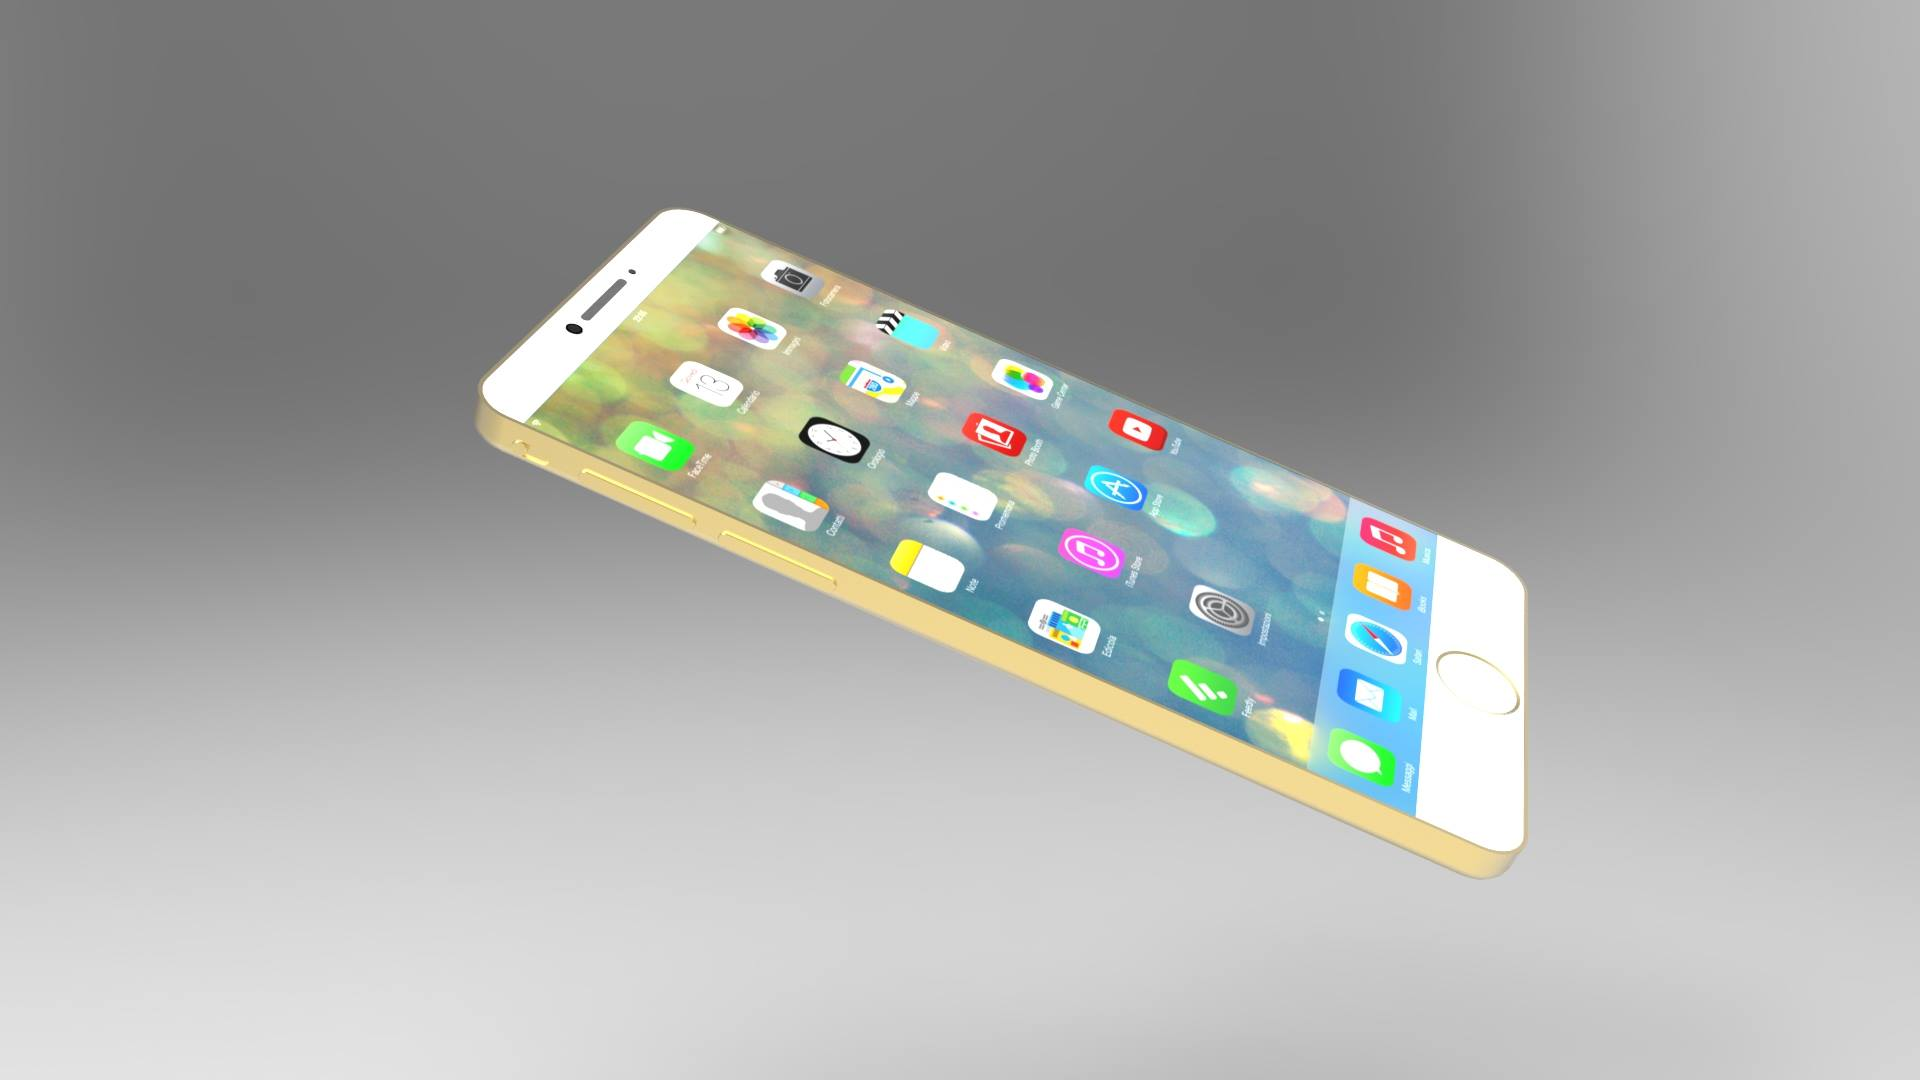 The Latest 'iPhone 6' Video Is Loud, Dramatic And Shows A Device That Will Never Happen